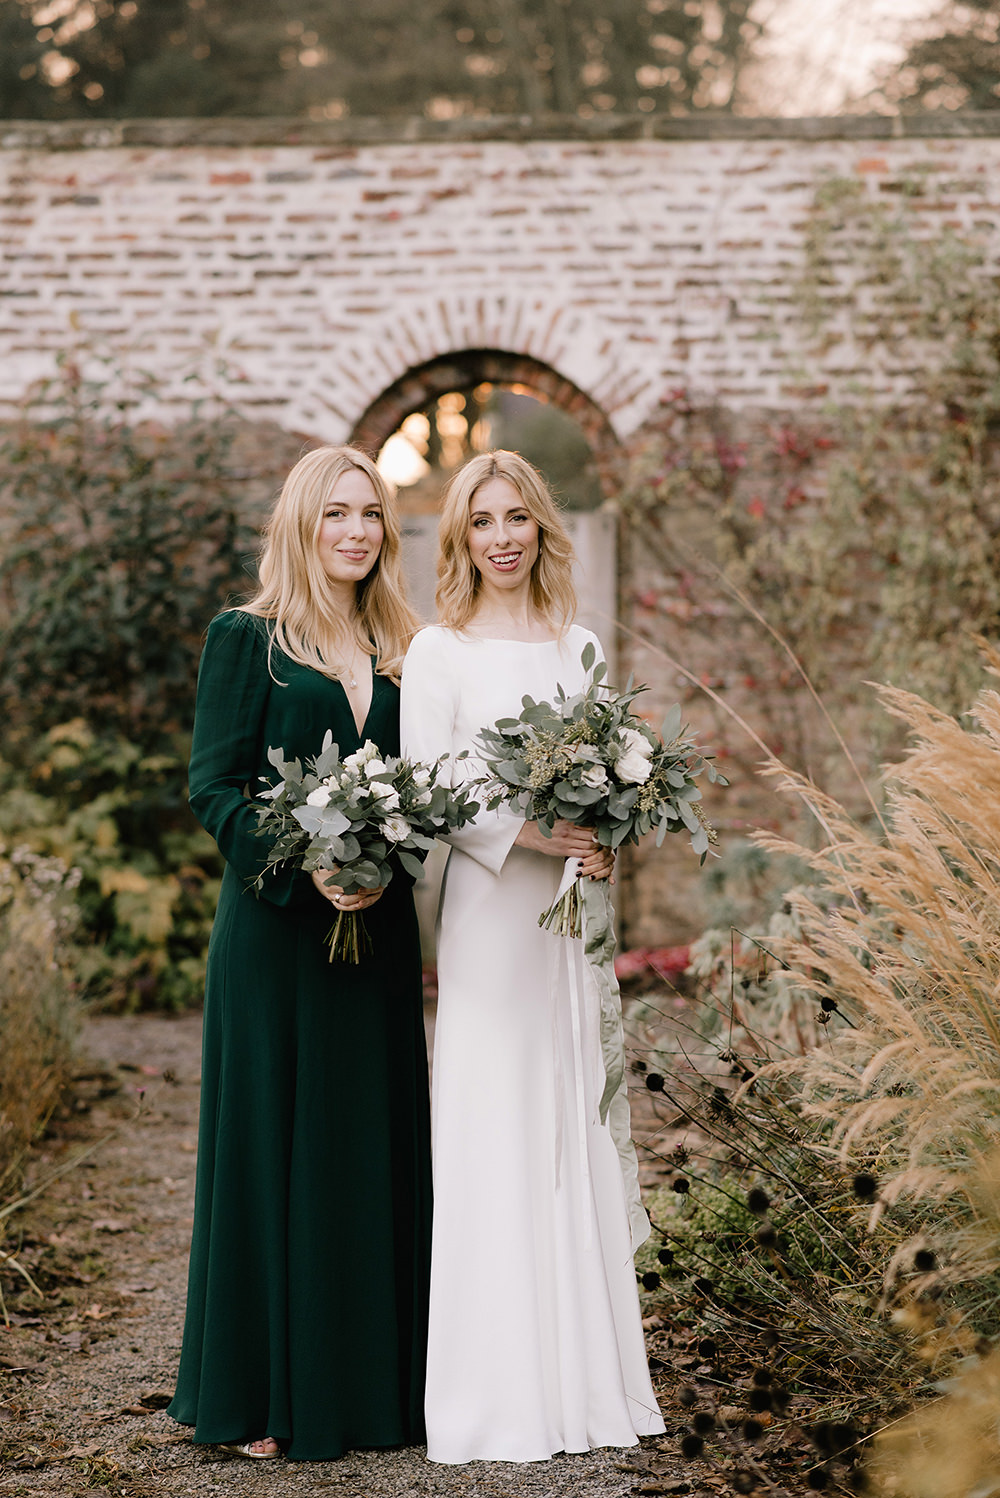 Emerald Green Bridesmaid Dress For A Winter Wedding At Middleton Lodge